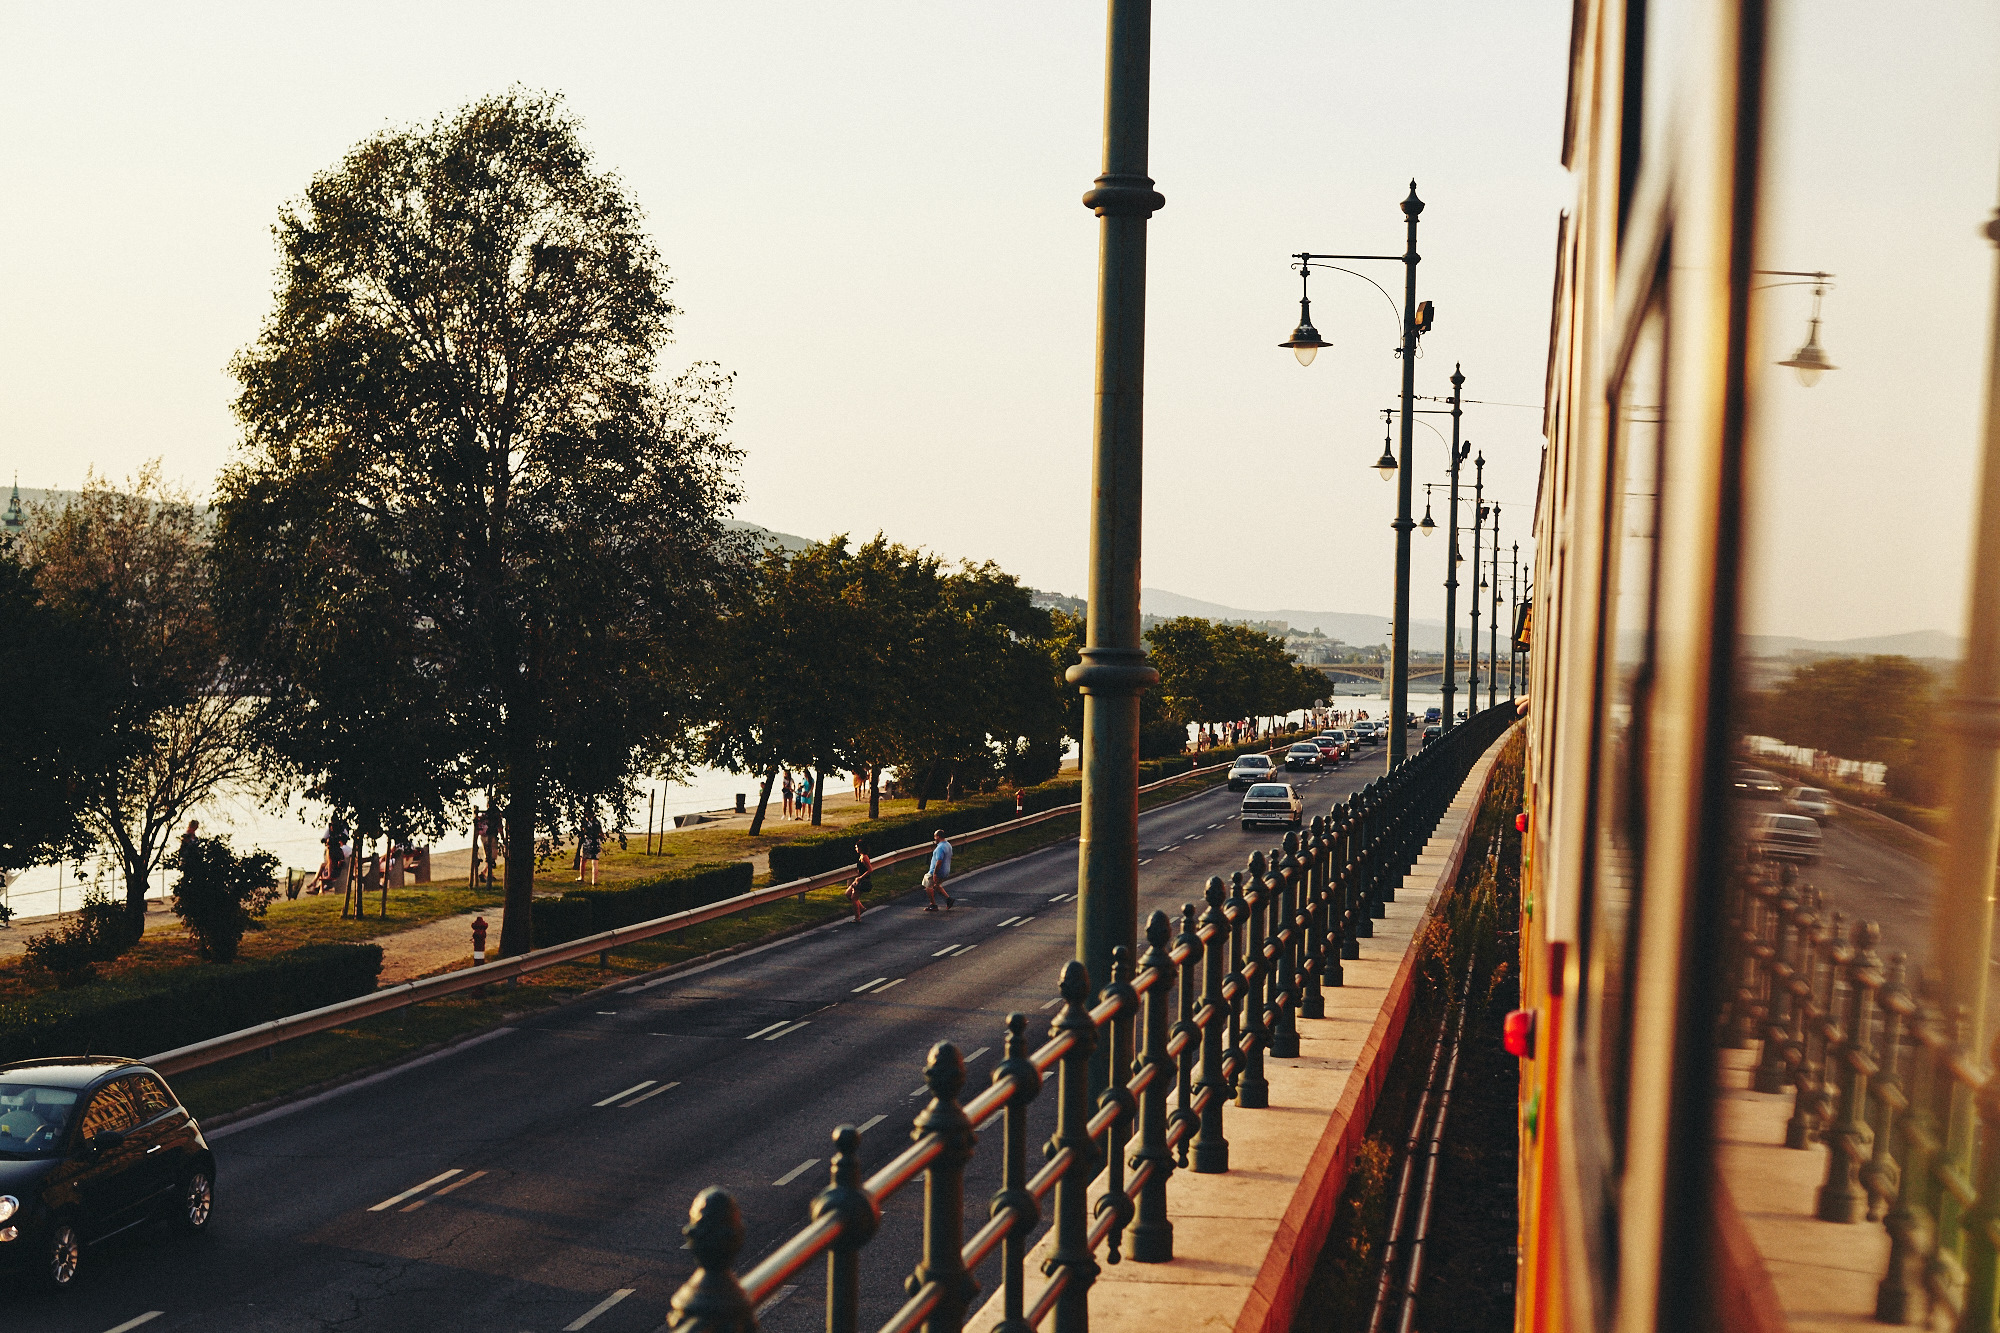 maxmotel_budapest_aug2015_day02_04_streets_0913